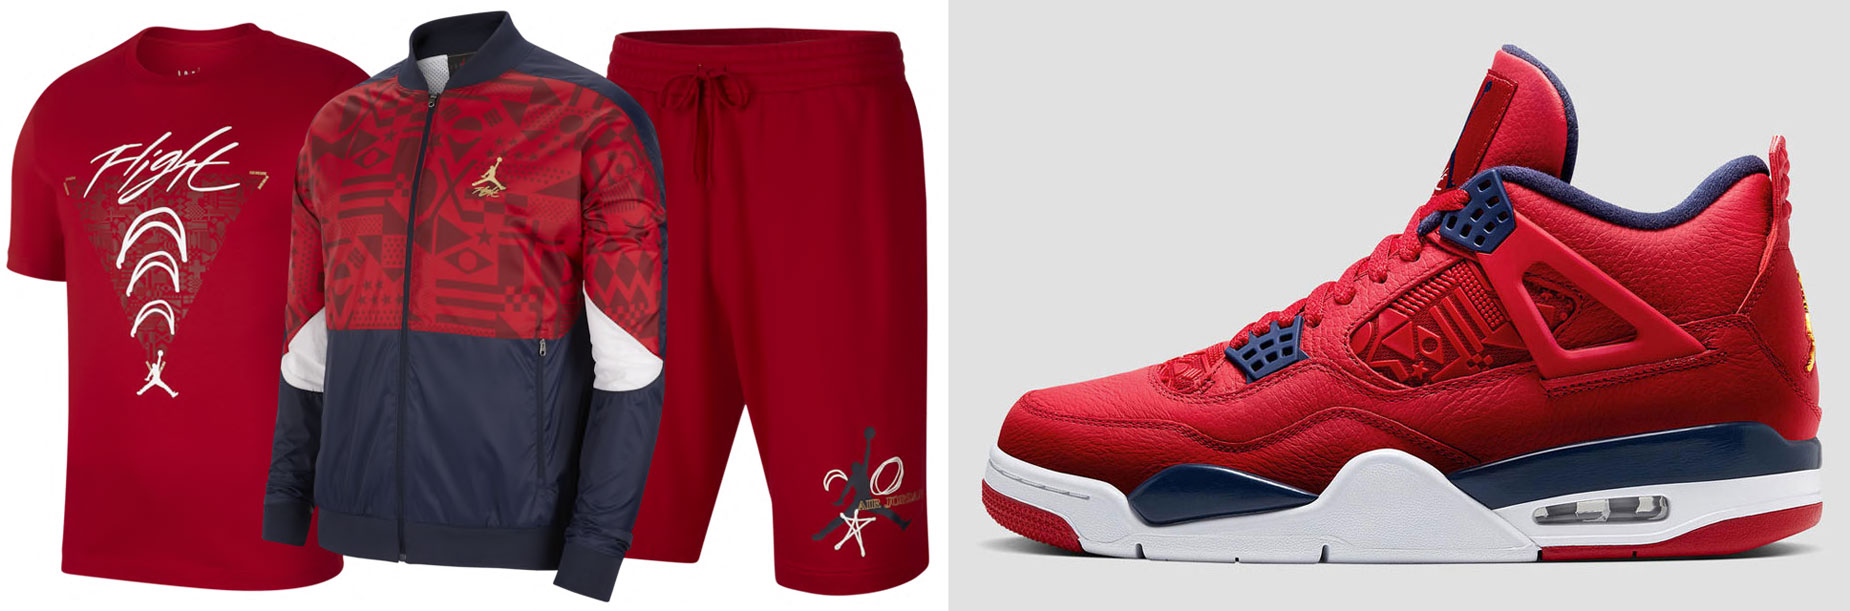 air-jordan-4-fiba-clothing-outfits